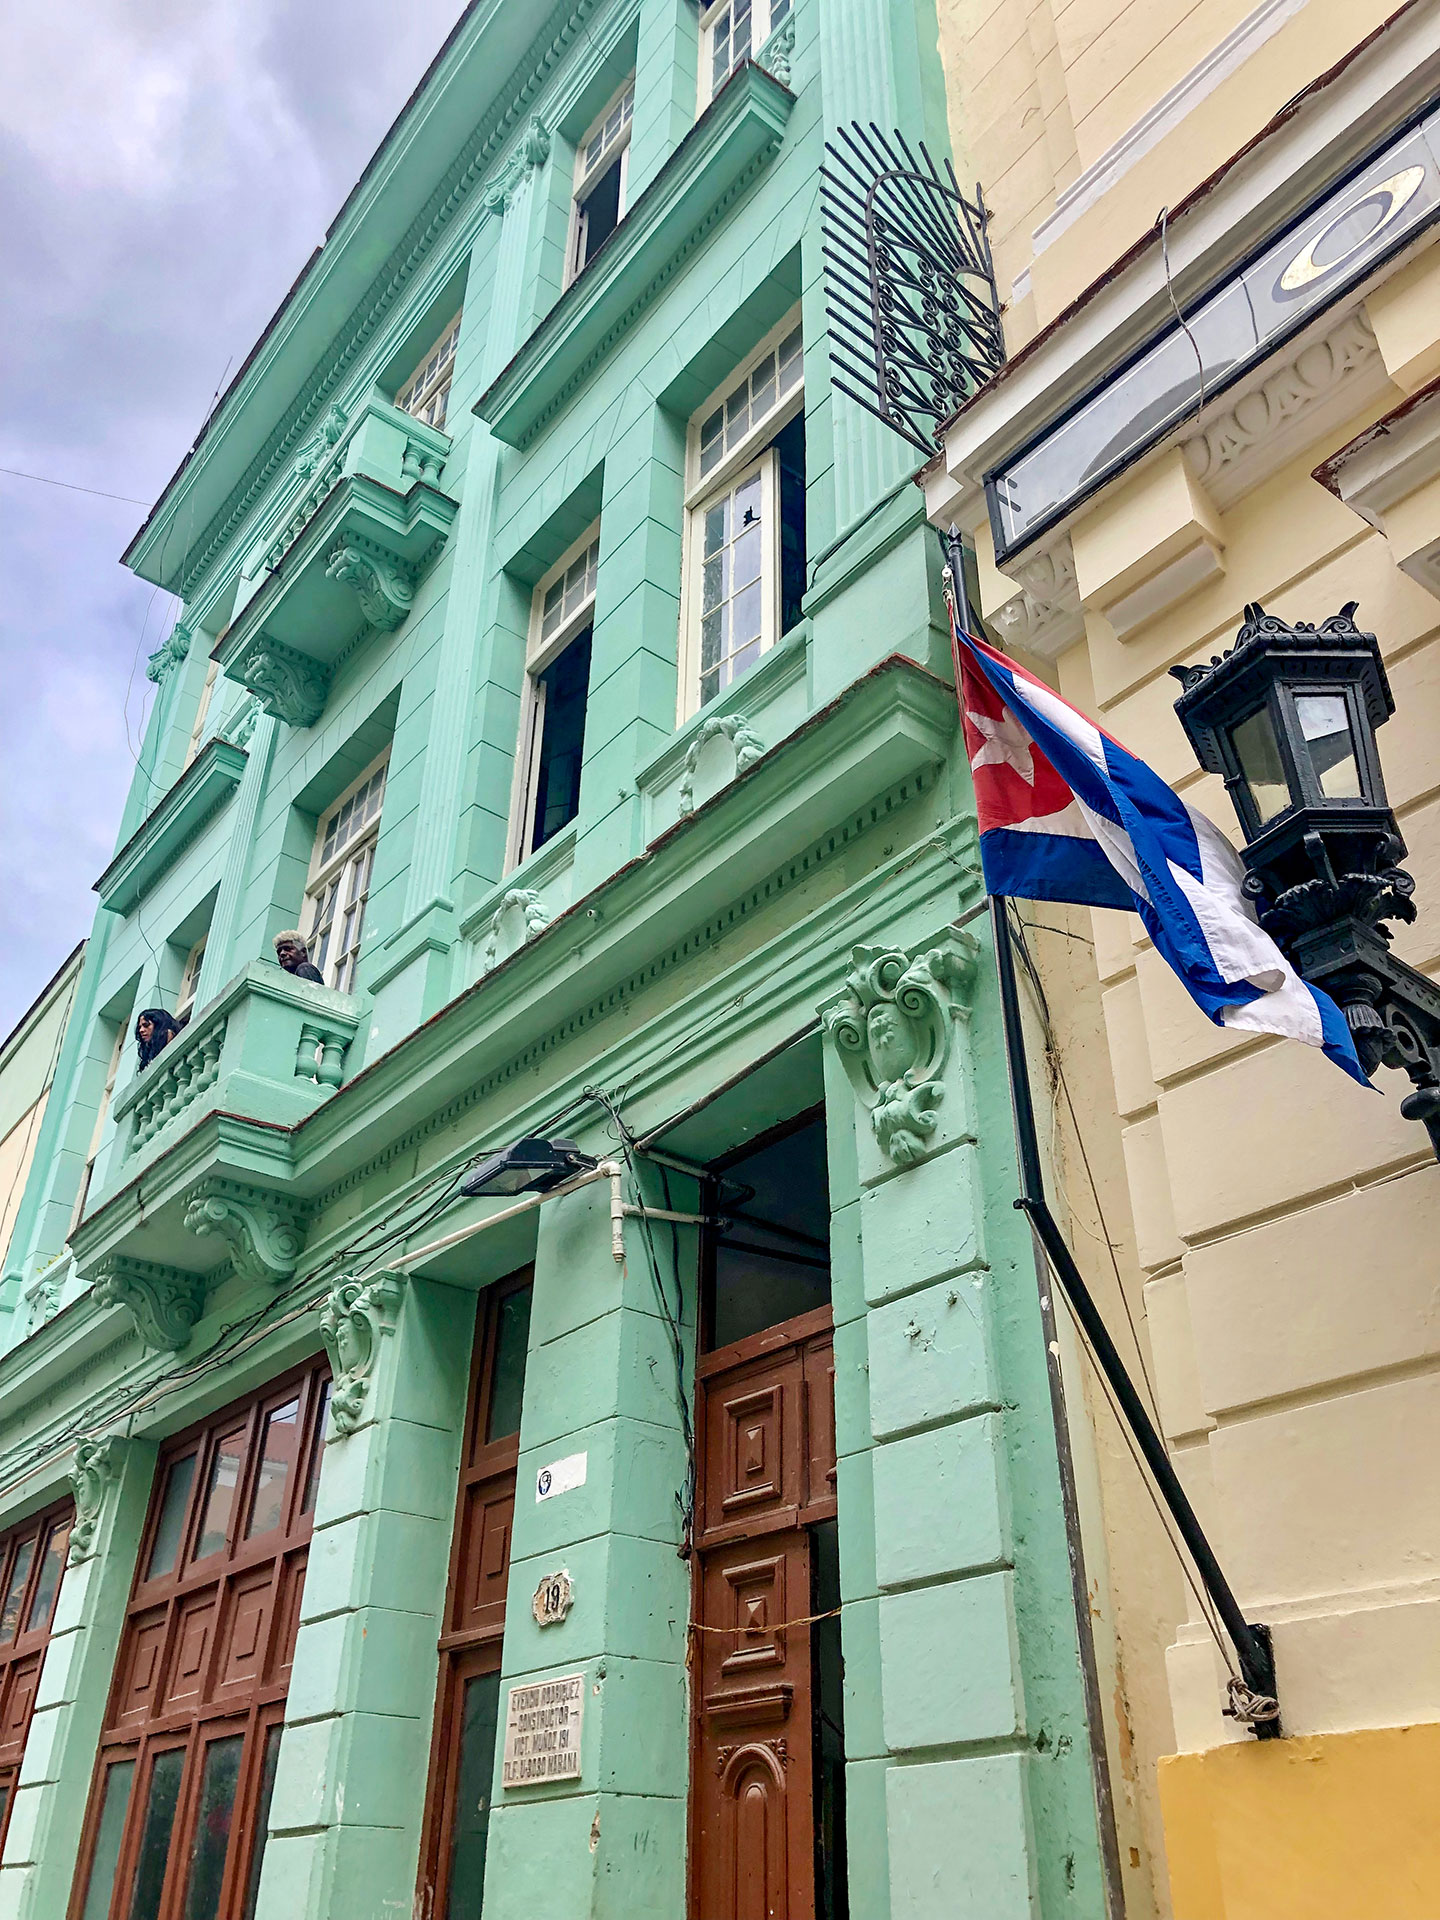 Colorful building with the cuban flag in Havana